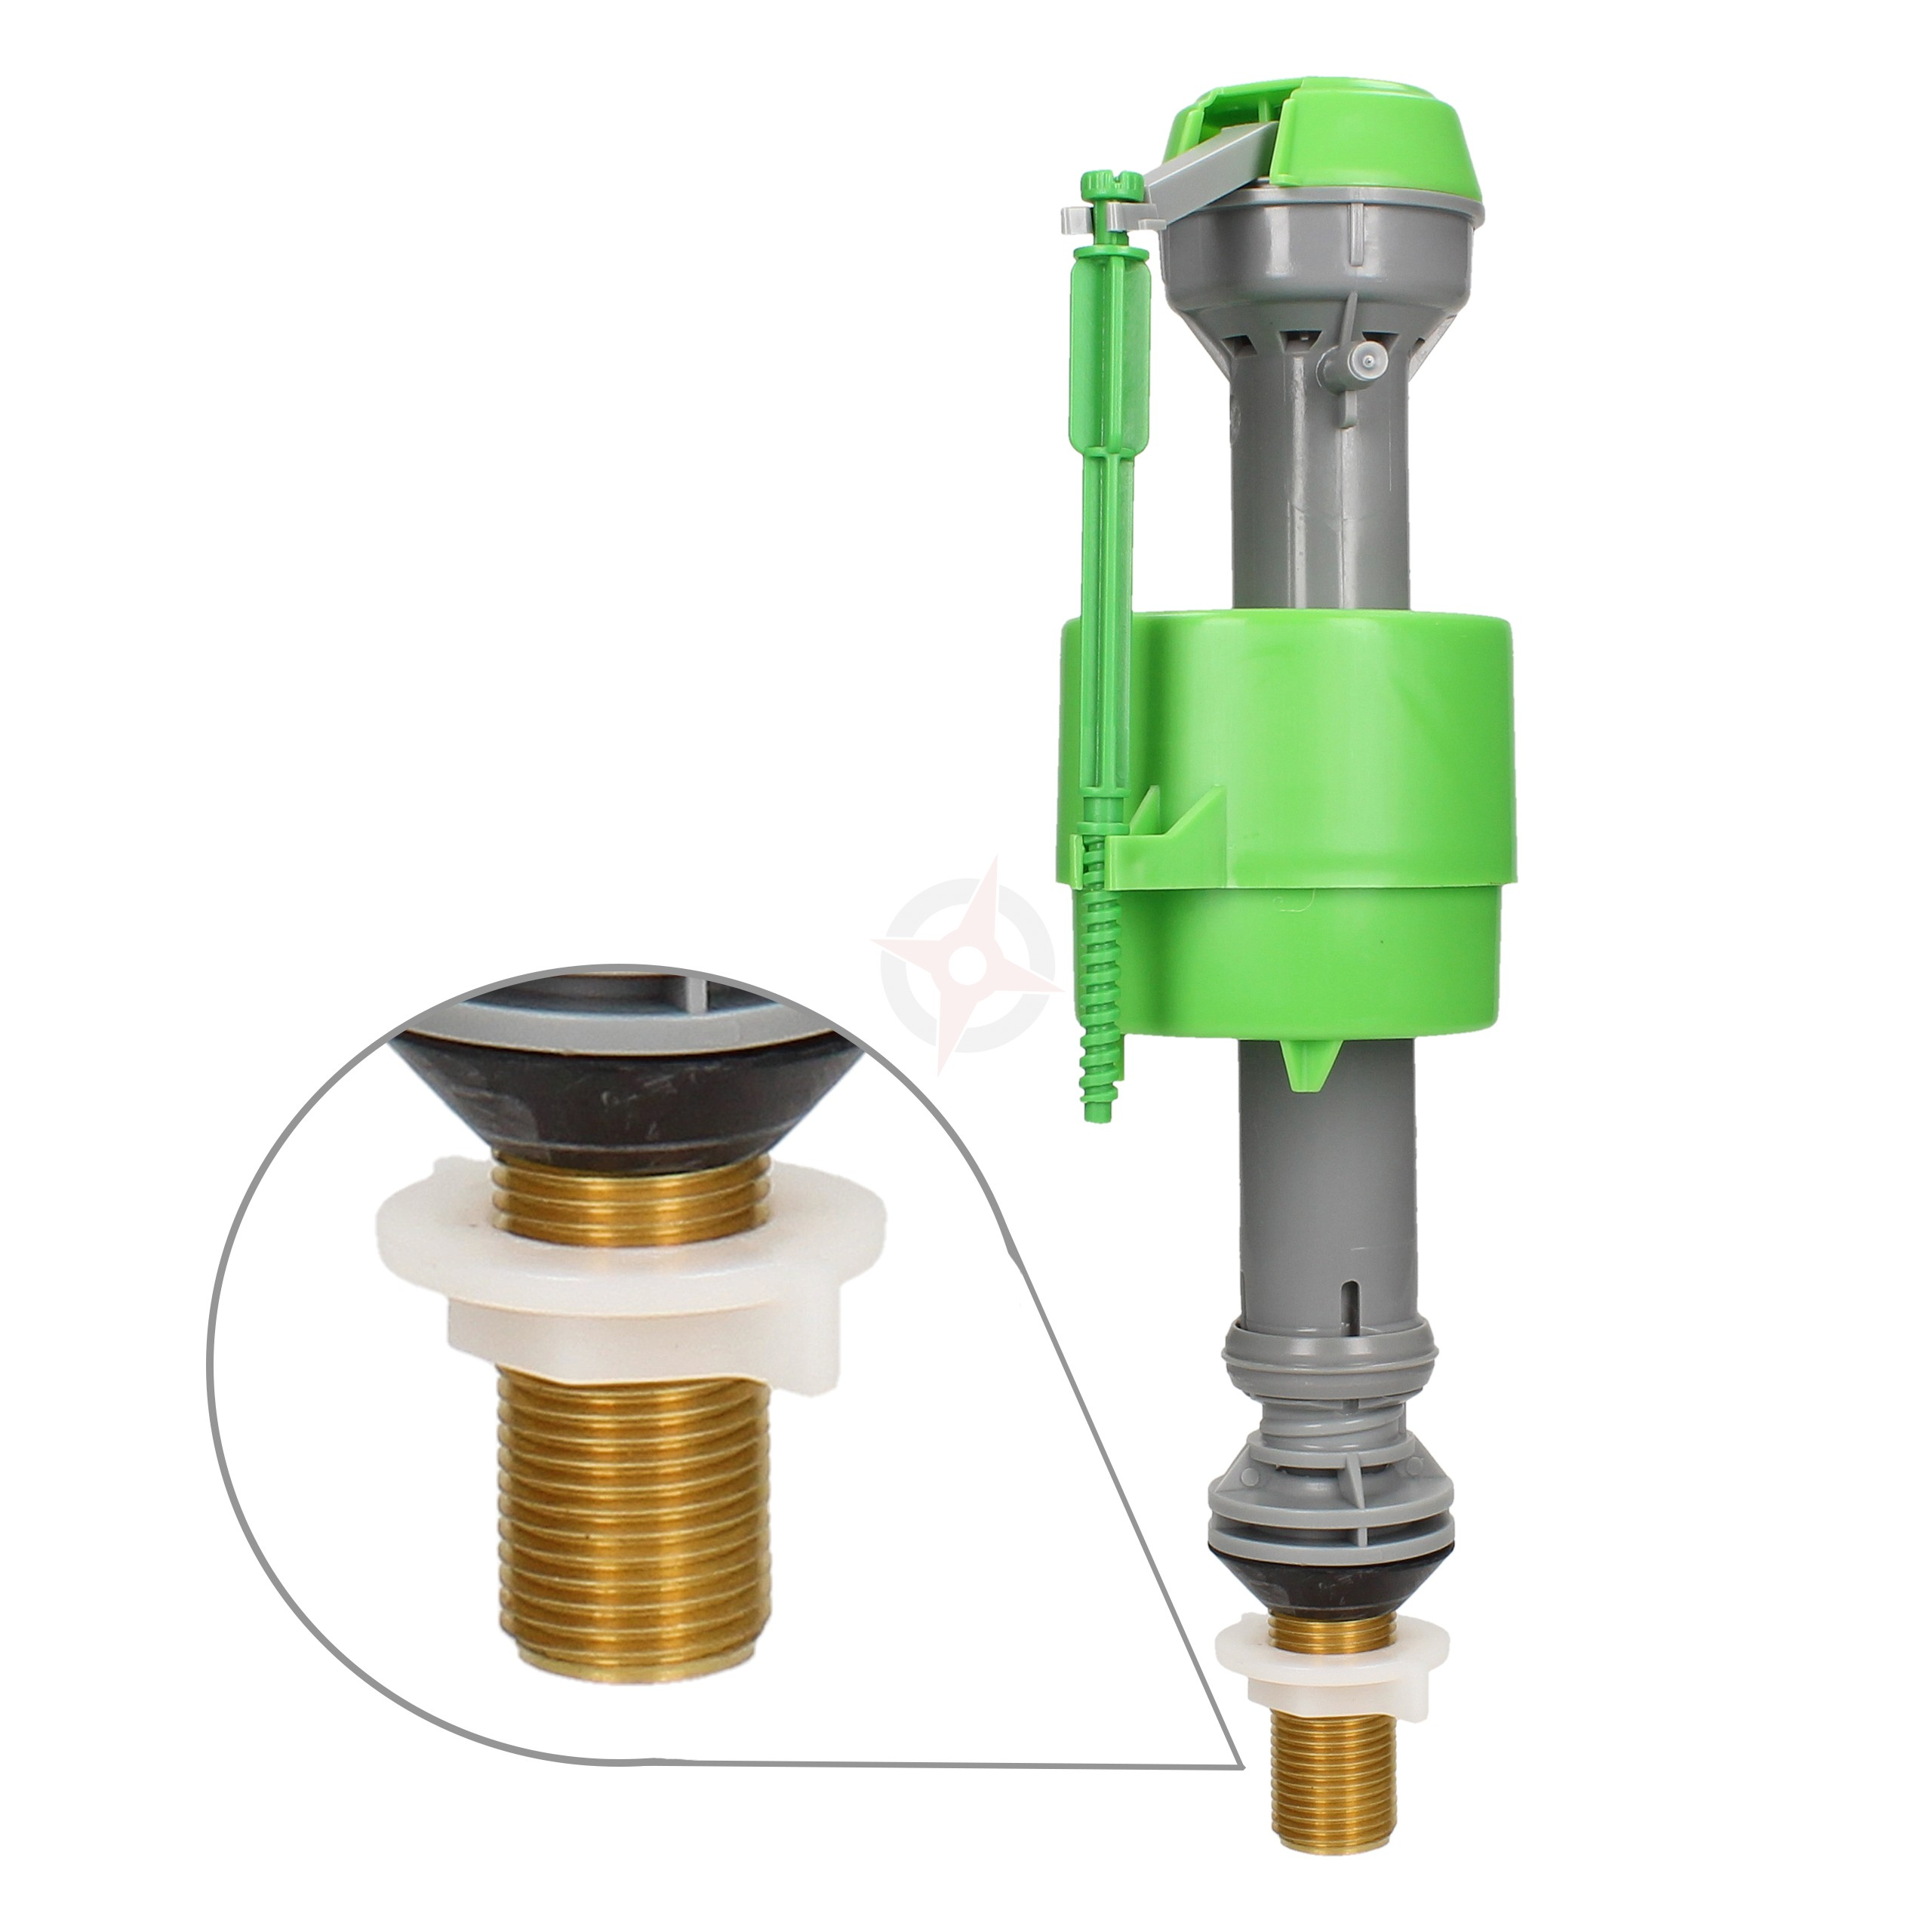 "FlushKING Adjustable Bottom Entry Fill Valve - Brass Shank (1/2"")"